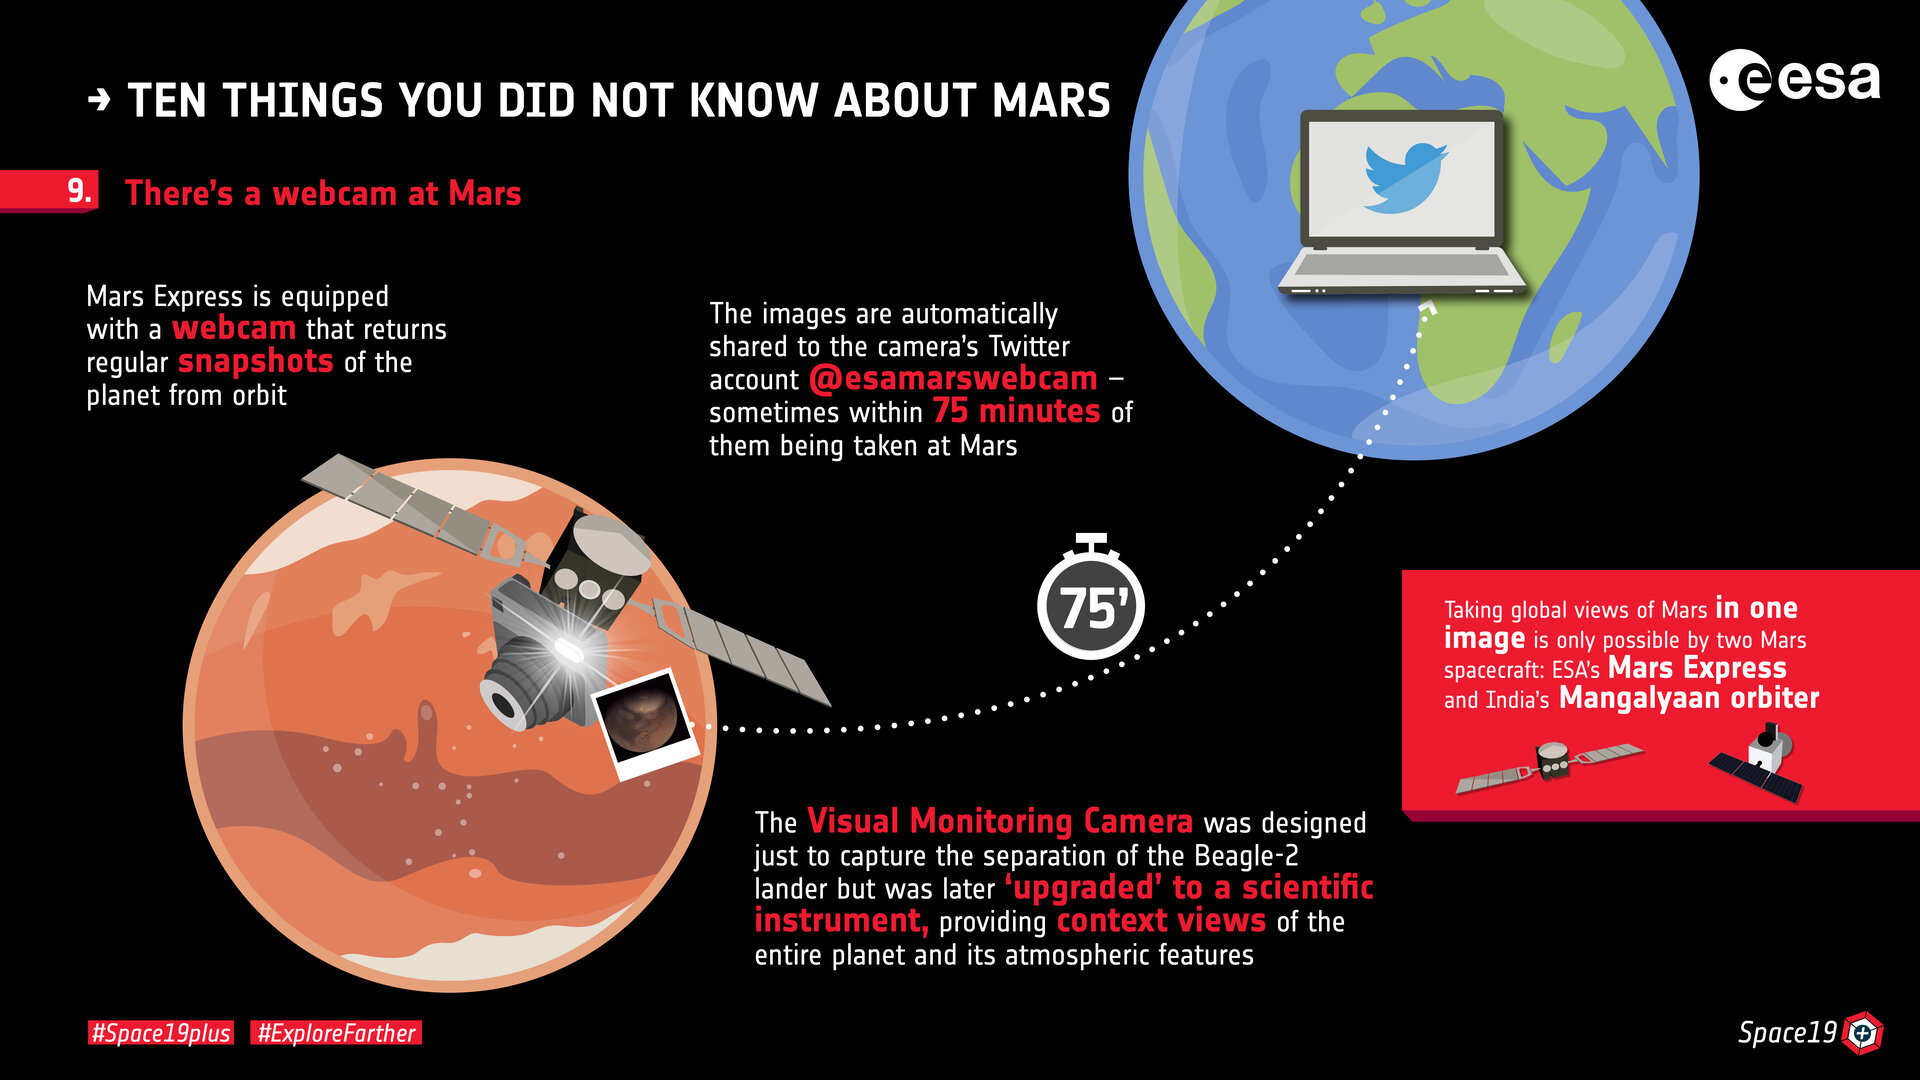 Ten things you did not know about Mars: 9. Instant images